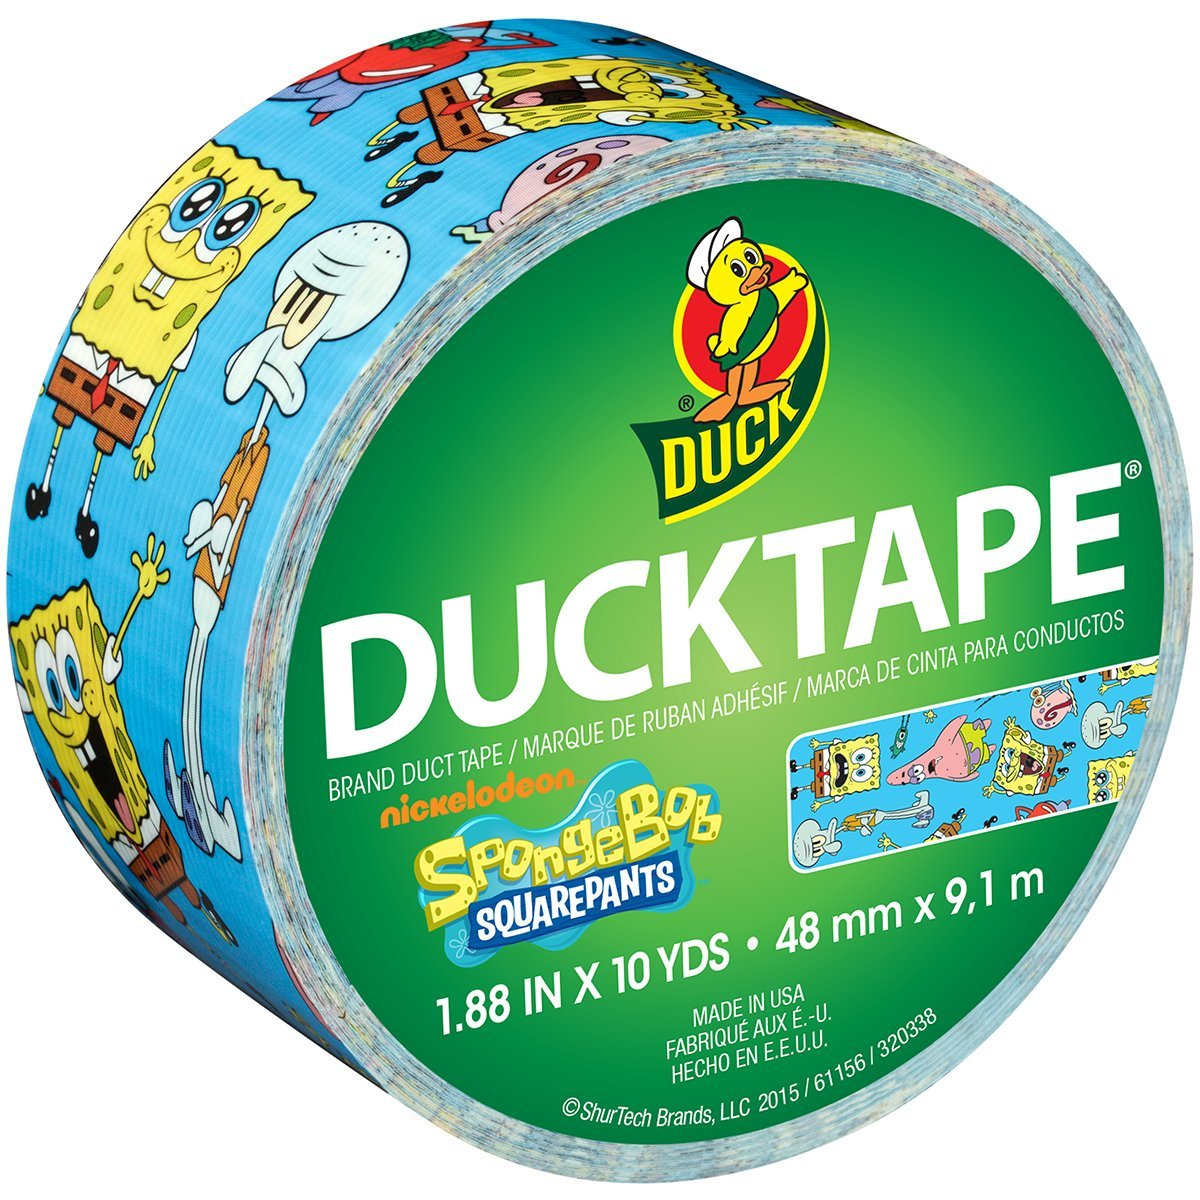 Brand 284083 Licensed Duct Tape, SpongeBob SquarePants, 1.88 Inches x 10 Yards, Single Roll, Excellent for crafting, fun and imaginative projects By Duck